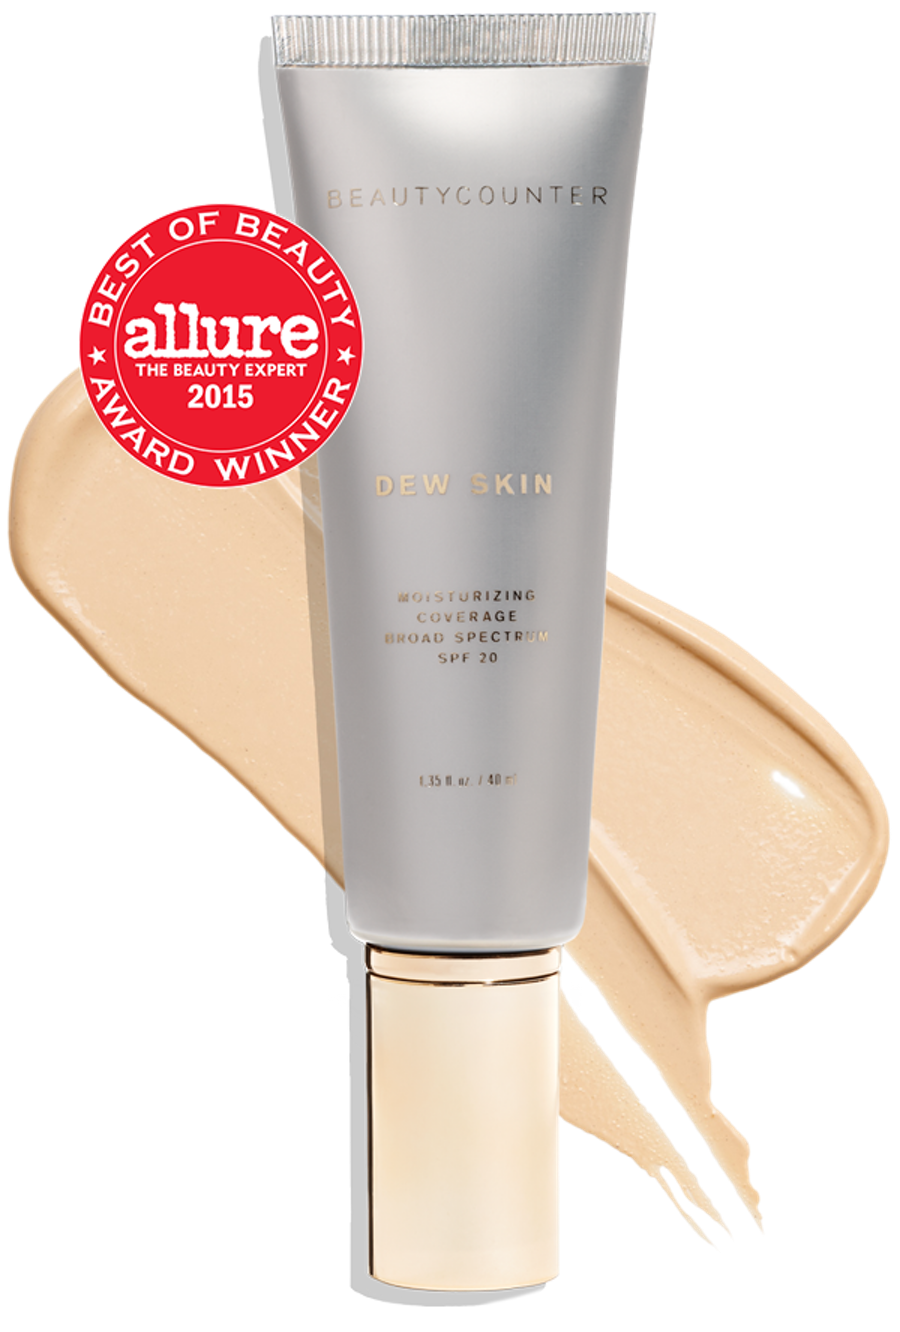 My every day routine consists of only a few things and one of them is making sure I have some sunscreen on my face. With the dew tint, I get sun protection PLUS a nice glow and a touch of coverage to even out my skin tone. I use the No. 2 shade.